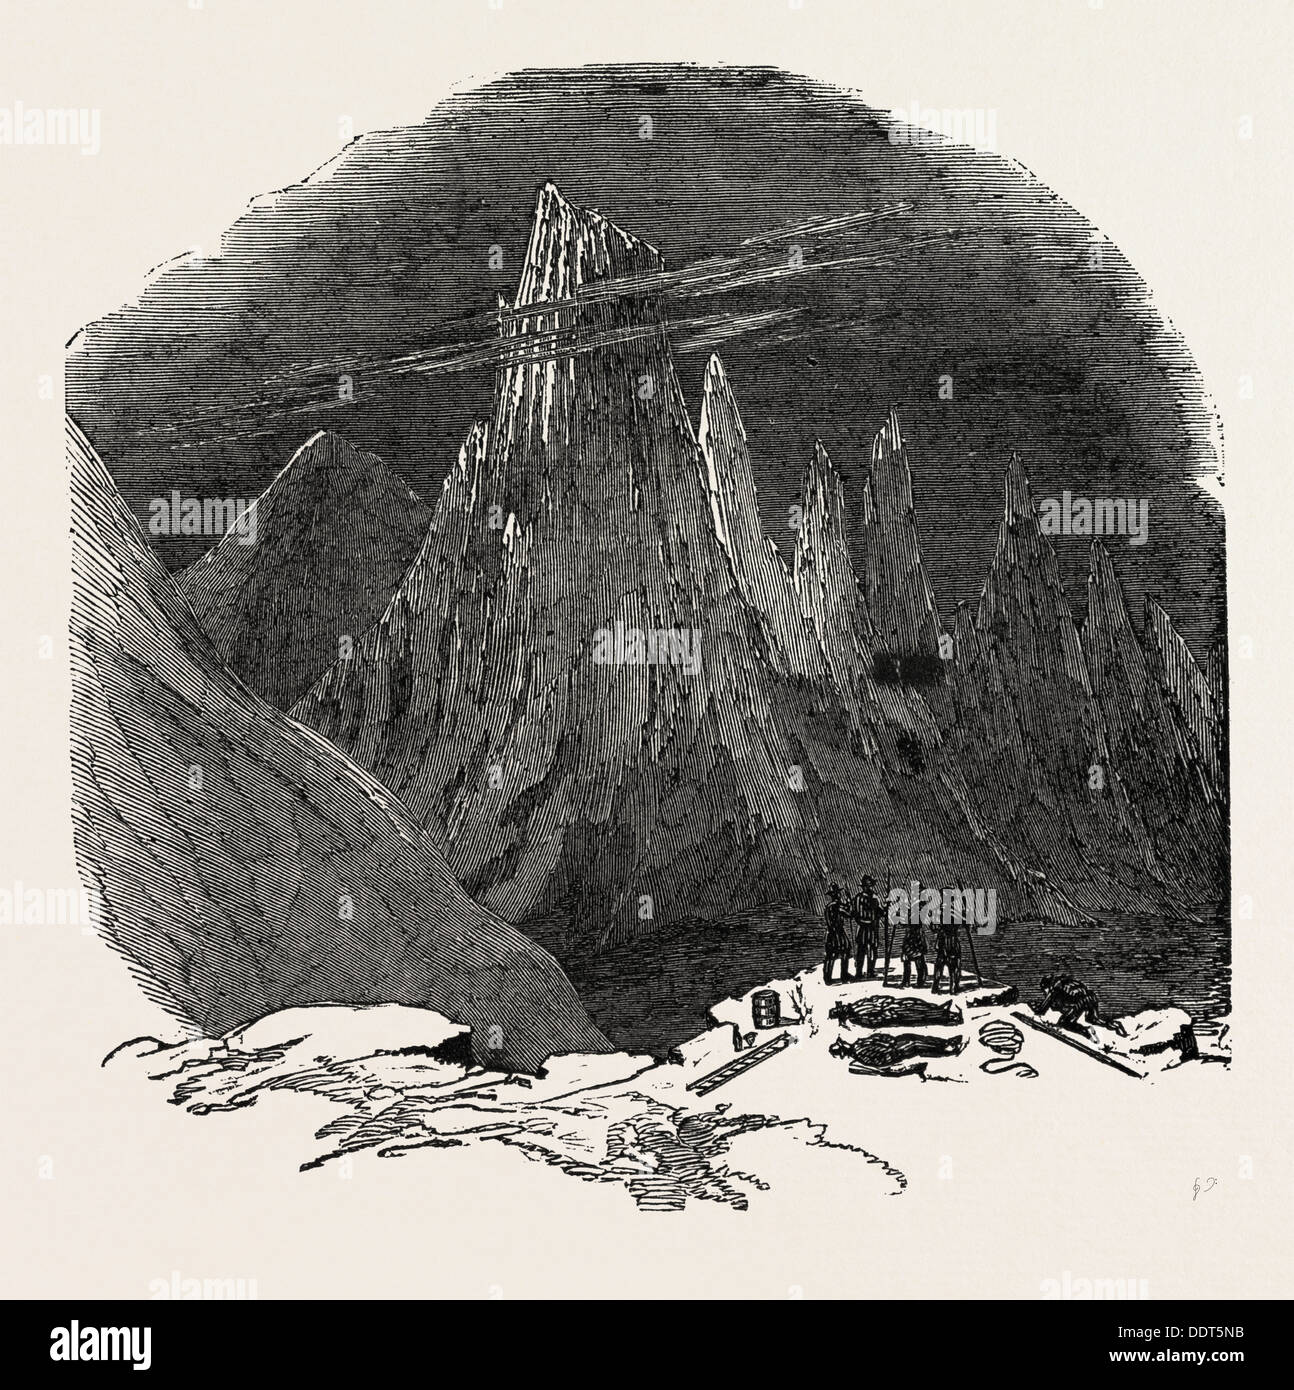 CLIMBING THE MONT BLANC: THE AIGUILLES SANS NOM, SEEN FROM BELOW THE ROCHER ROUGE, ALPS, FRENCH ALPS, FRANCE, 1851 engraving - Stock Image